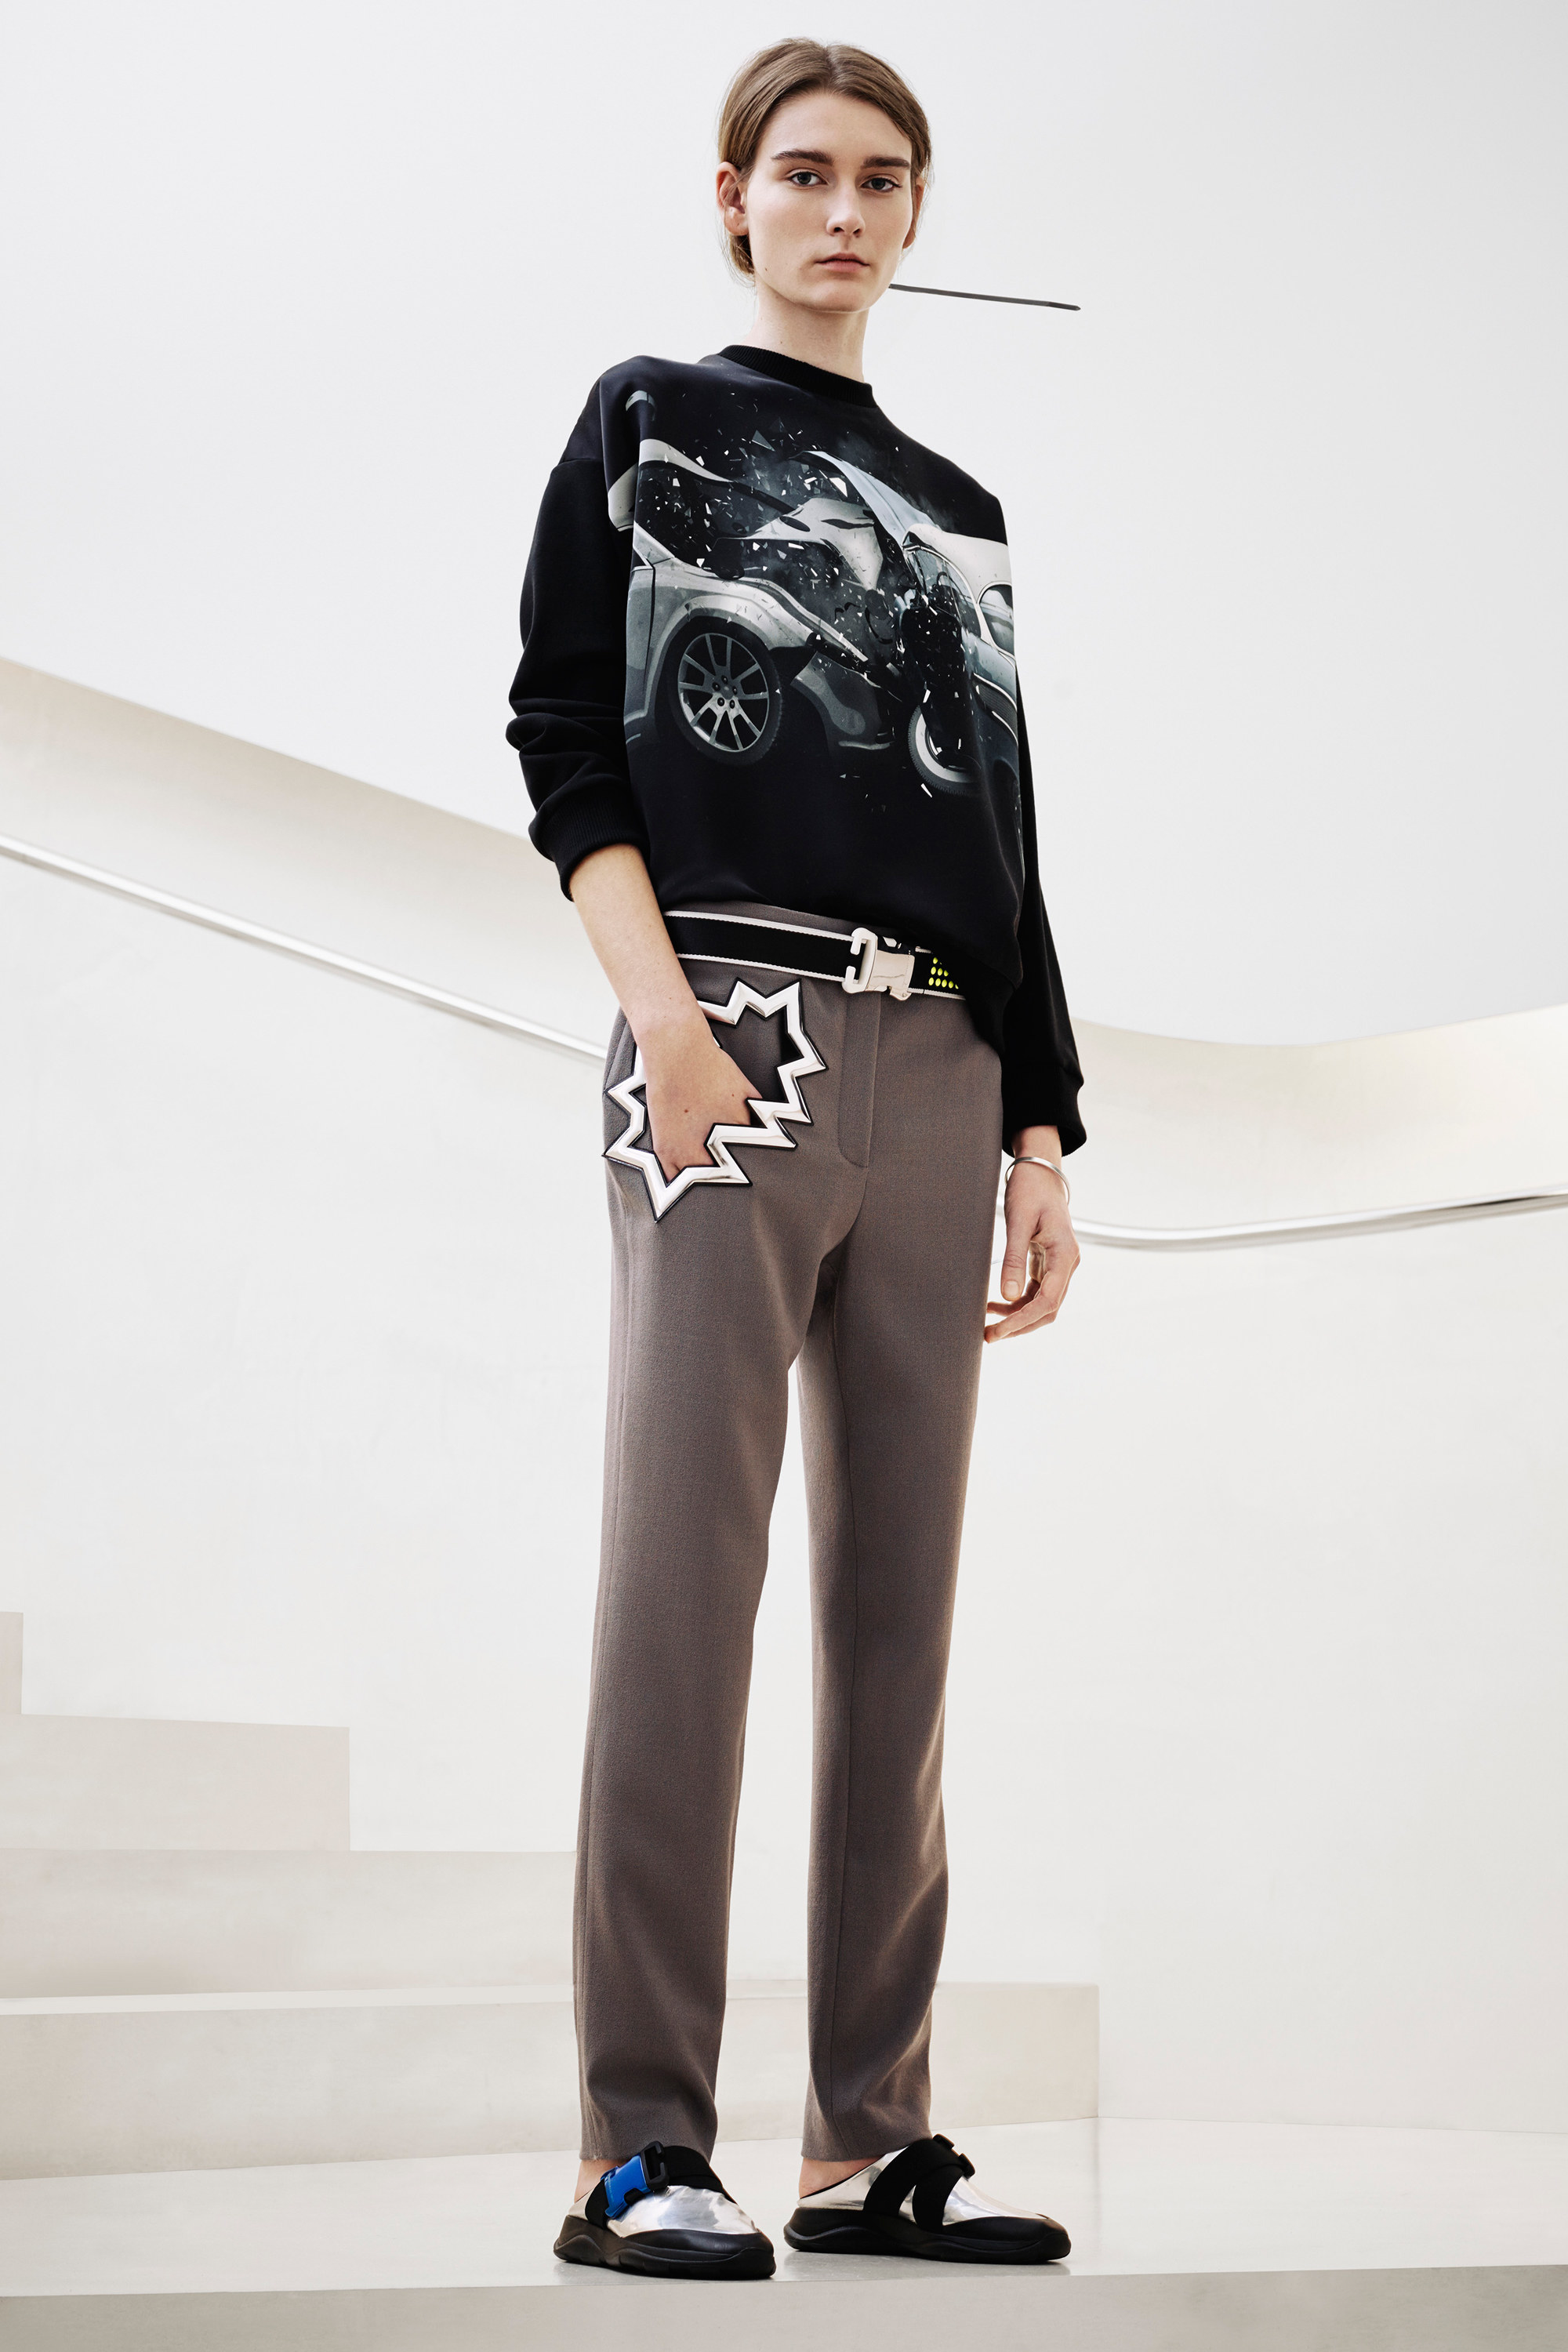 christopher-kane-pre-fall-2016-lookbook-14.jpg